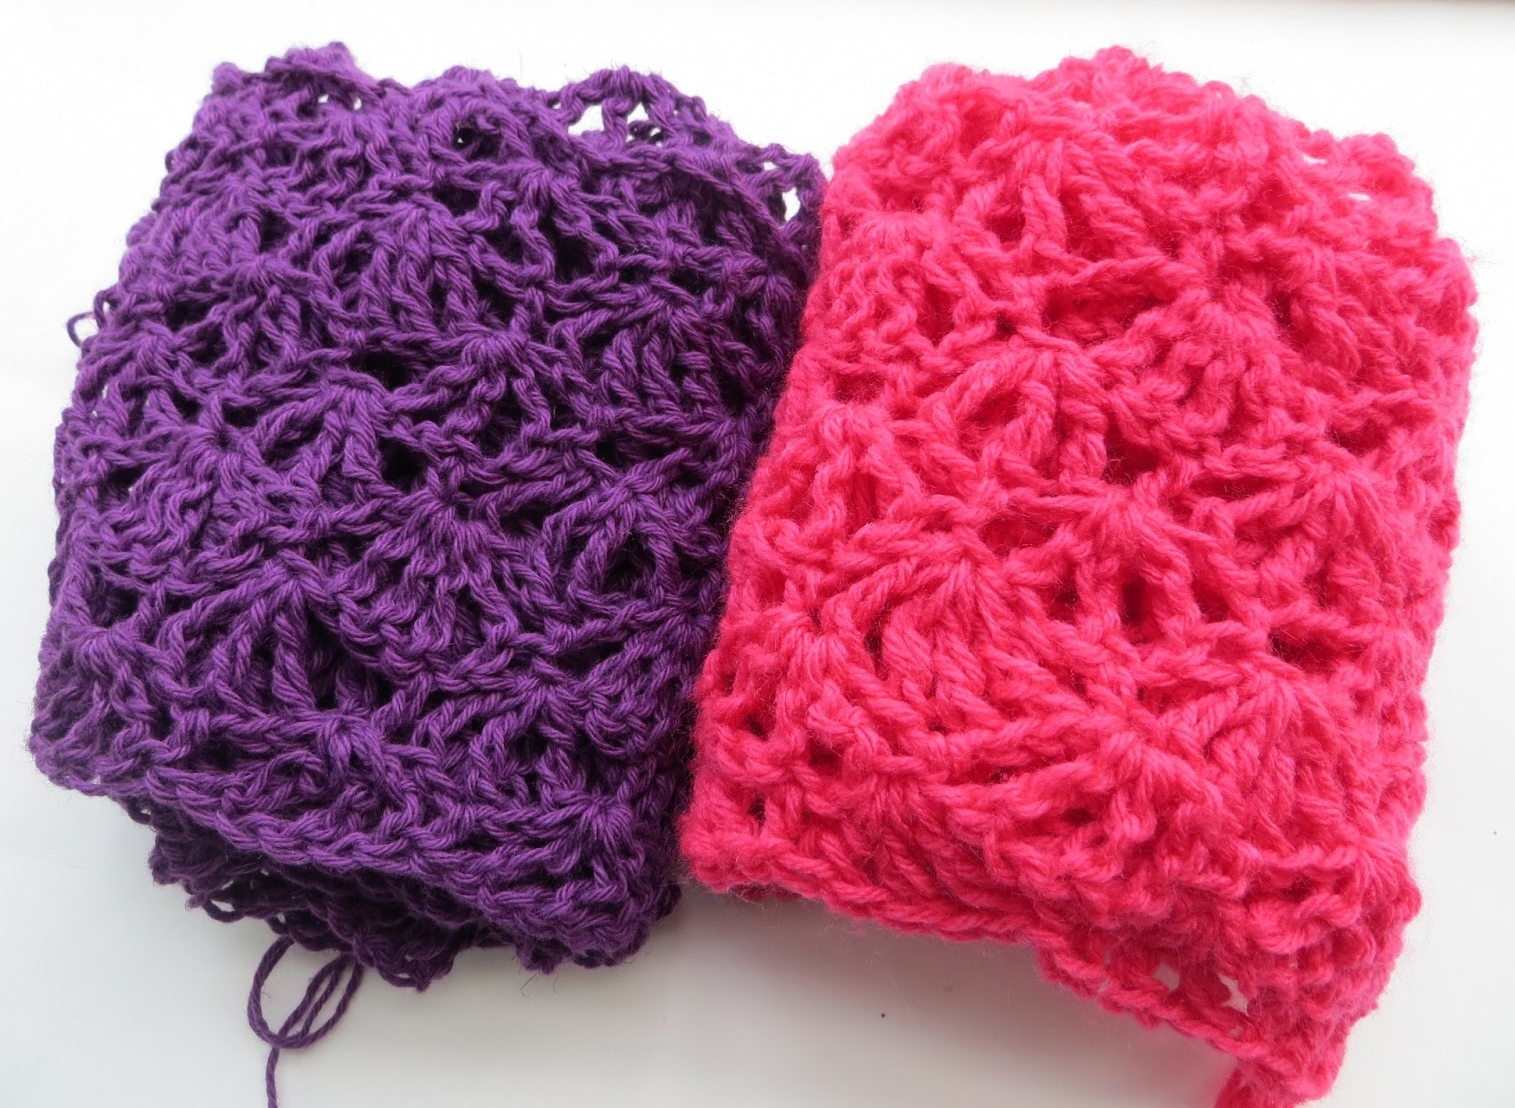 Crochet Patterns Free : Crochet Dreamz: Alana Lacy Scarf, Free Crochet Pattern